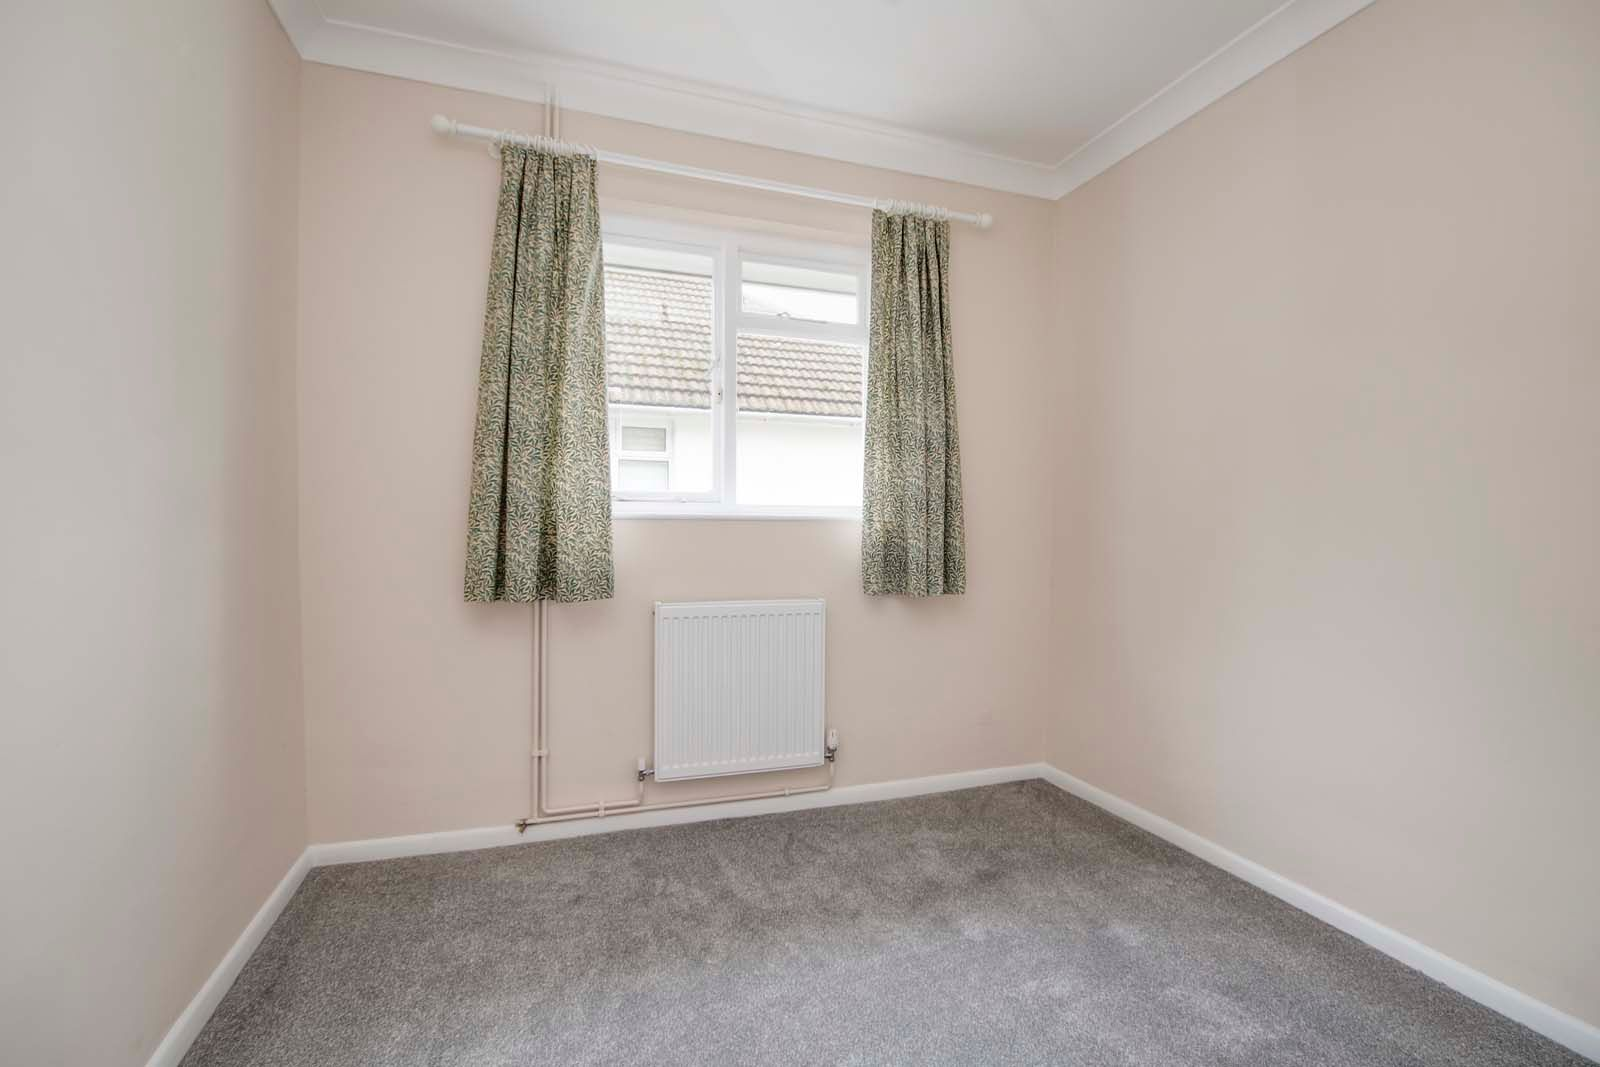 3 bed bungalow for sale in Hillview Crescent COMP MAY 2019 9